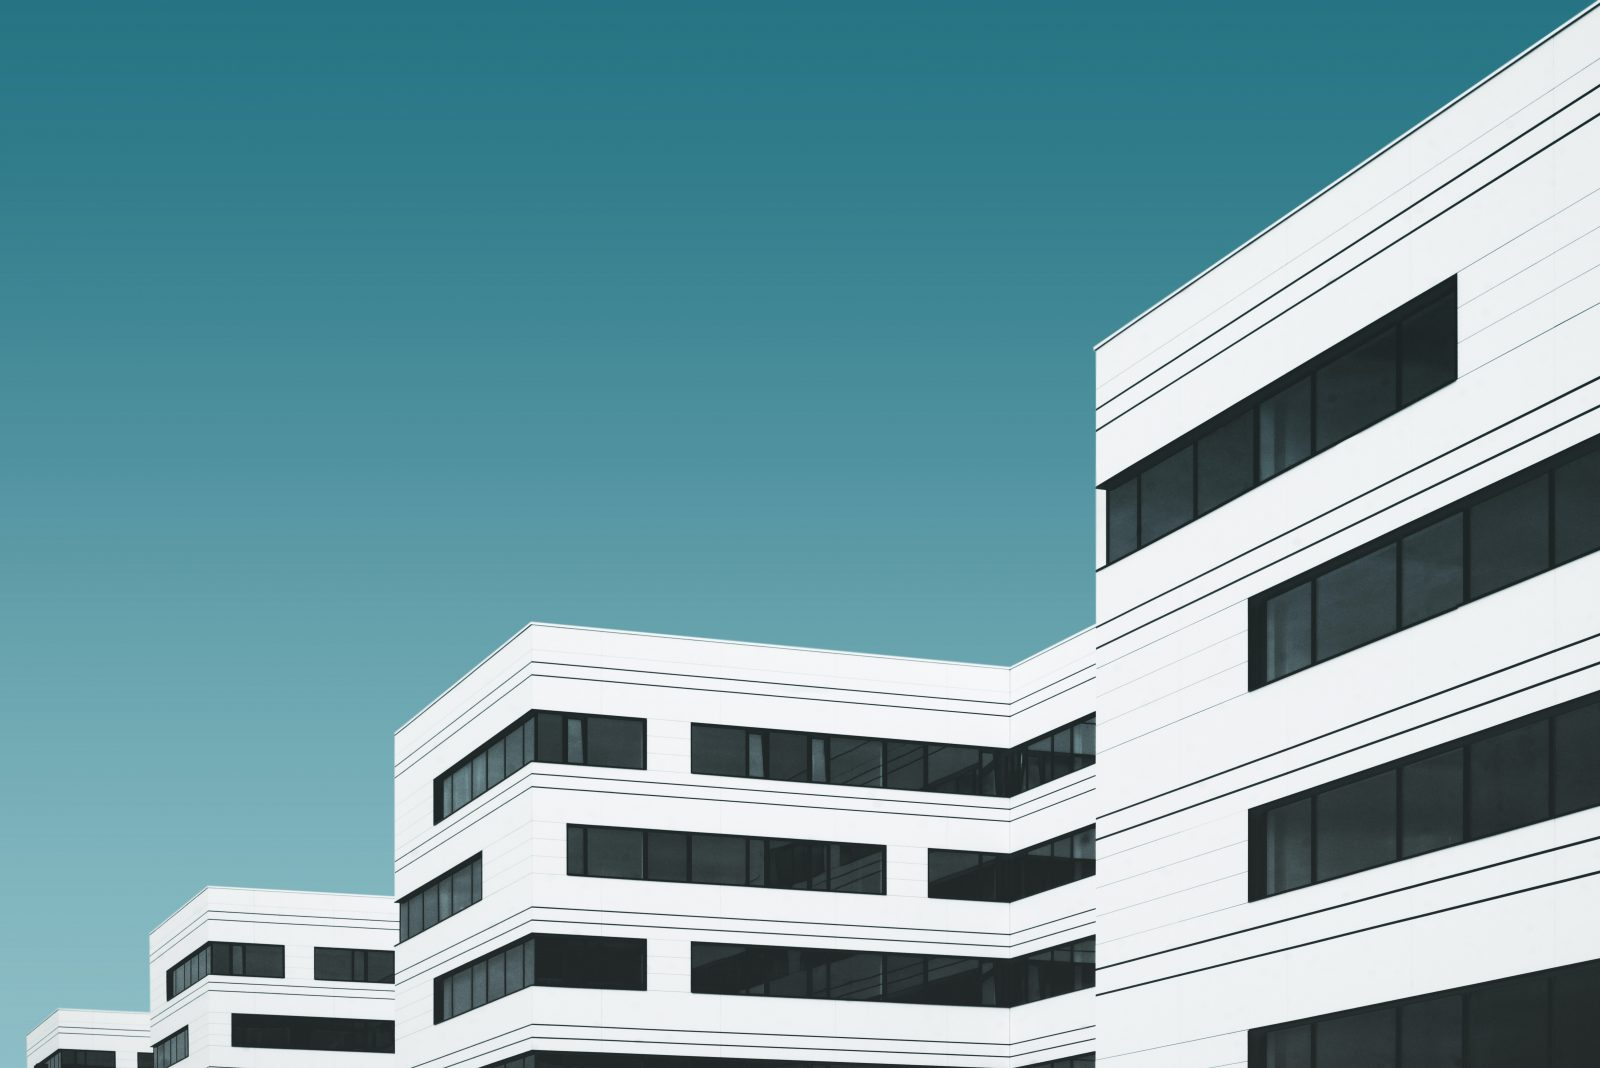 white concrete building illustration